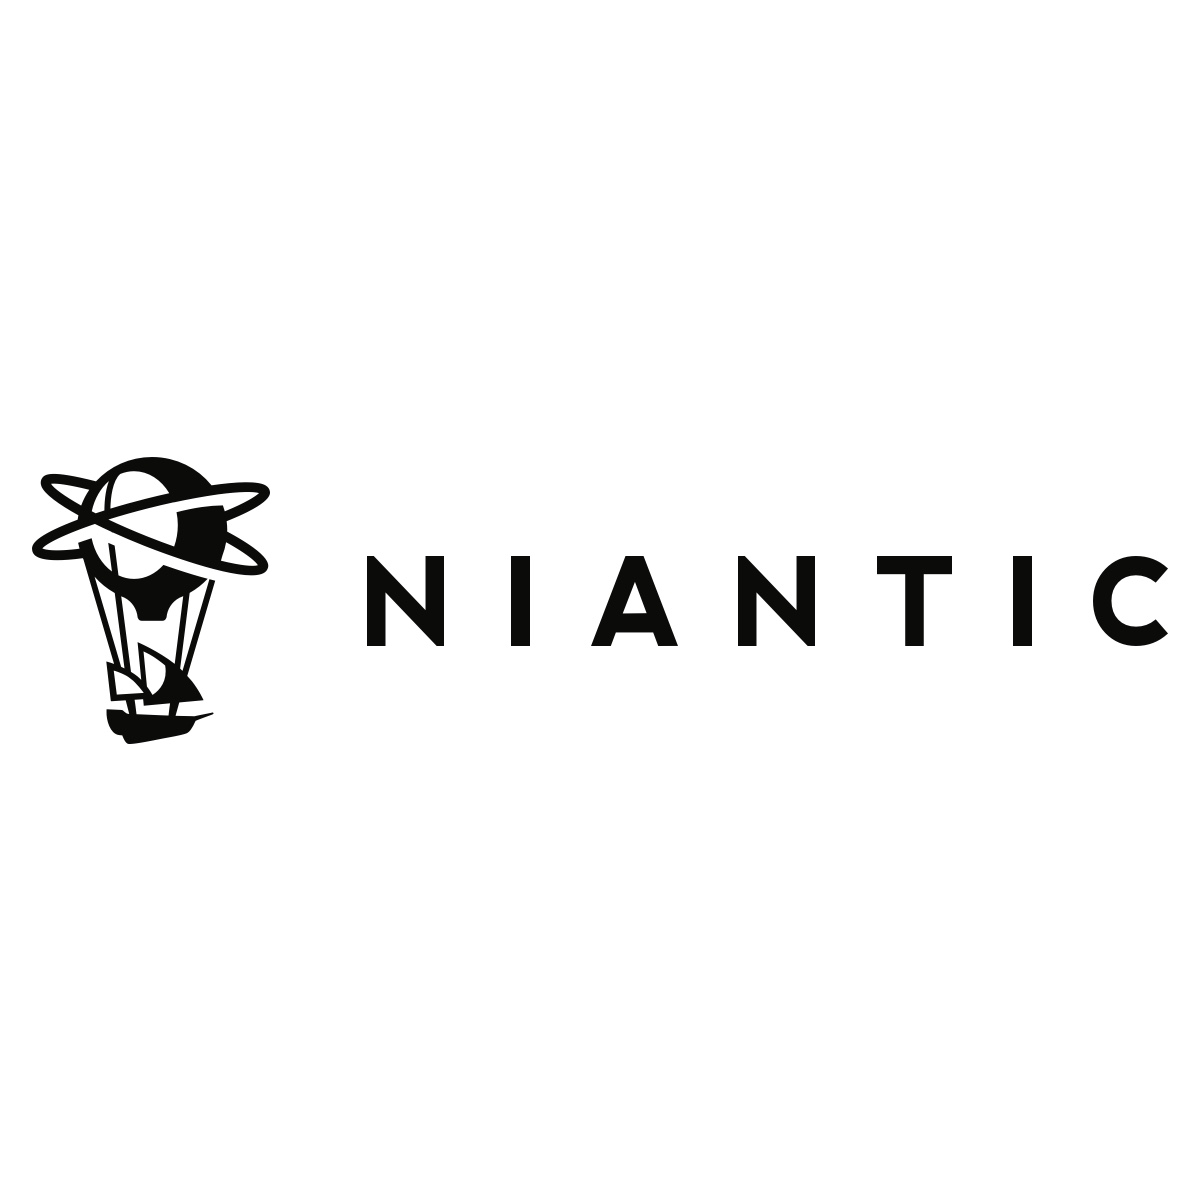 Niantic Square